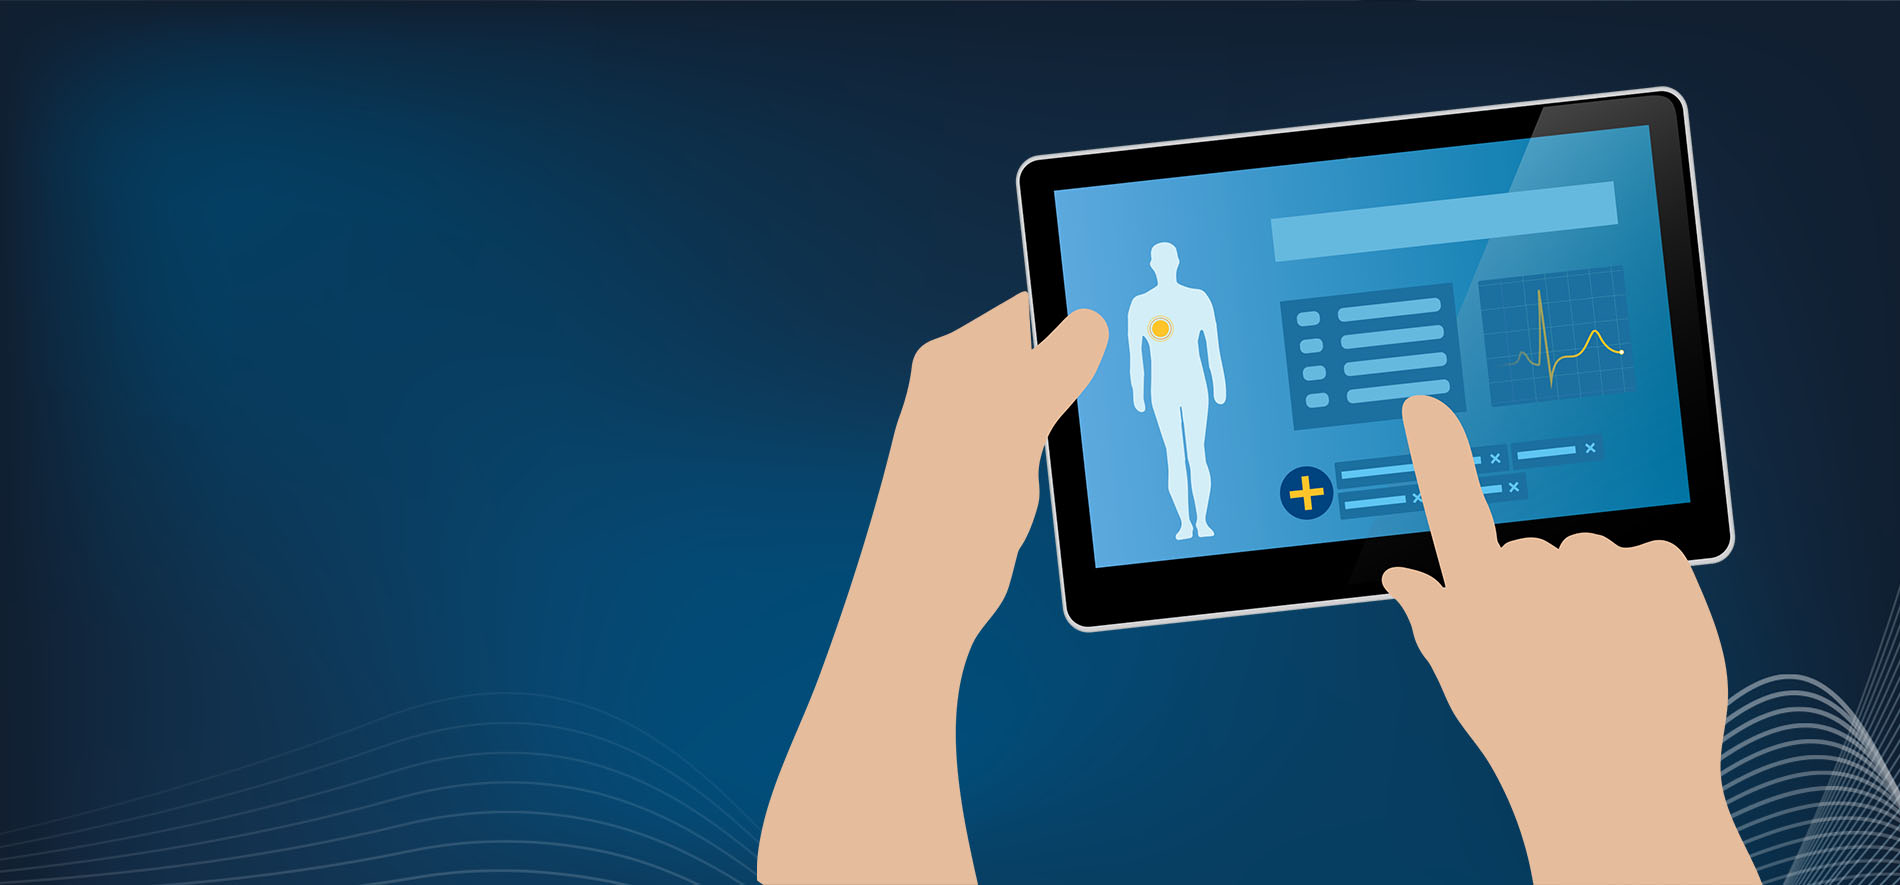 3 Ways Cloud Communications Creates an Ideal Patient Experience